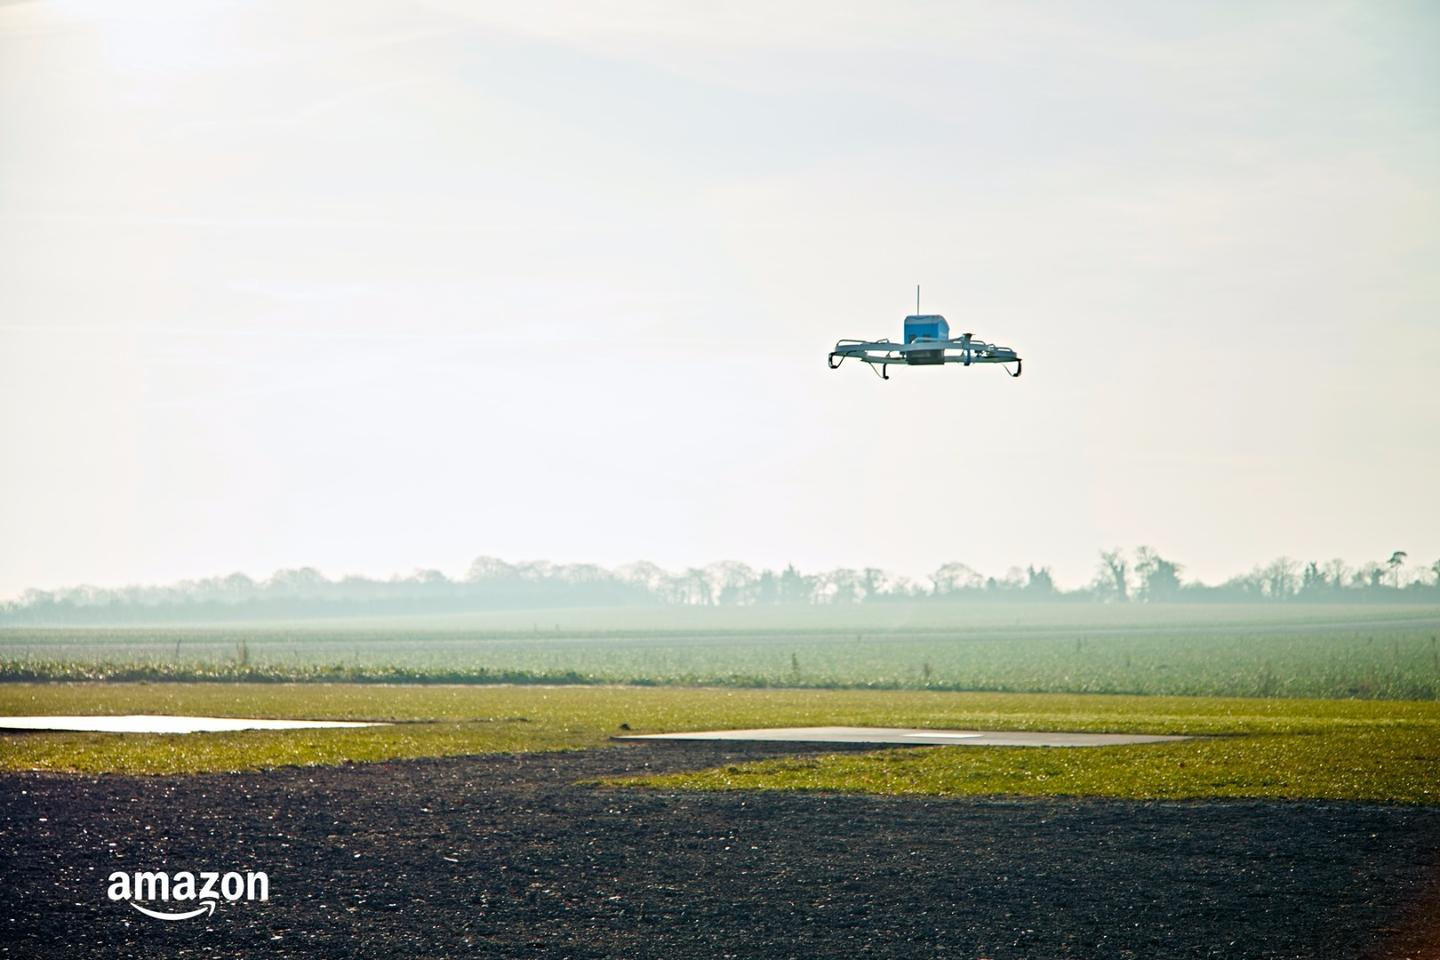 The drones being used for the Amazon Prime Air UK trial are electrically powered, fully autonomous and guided by GPS